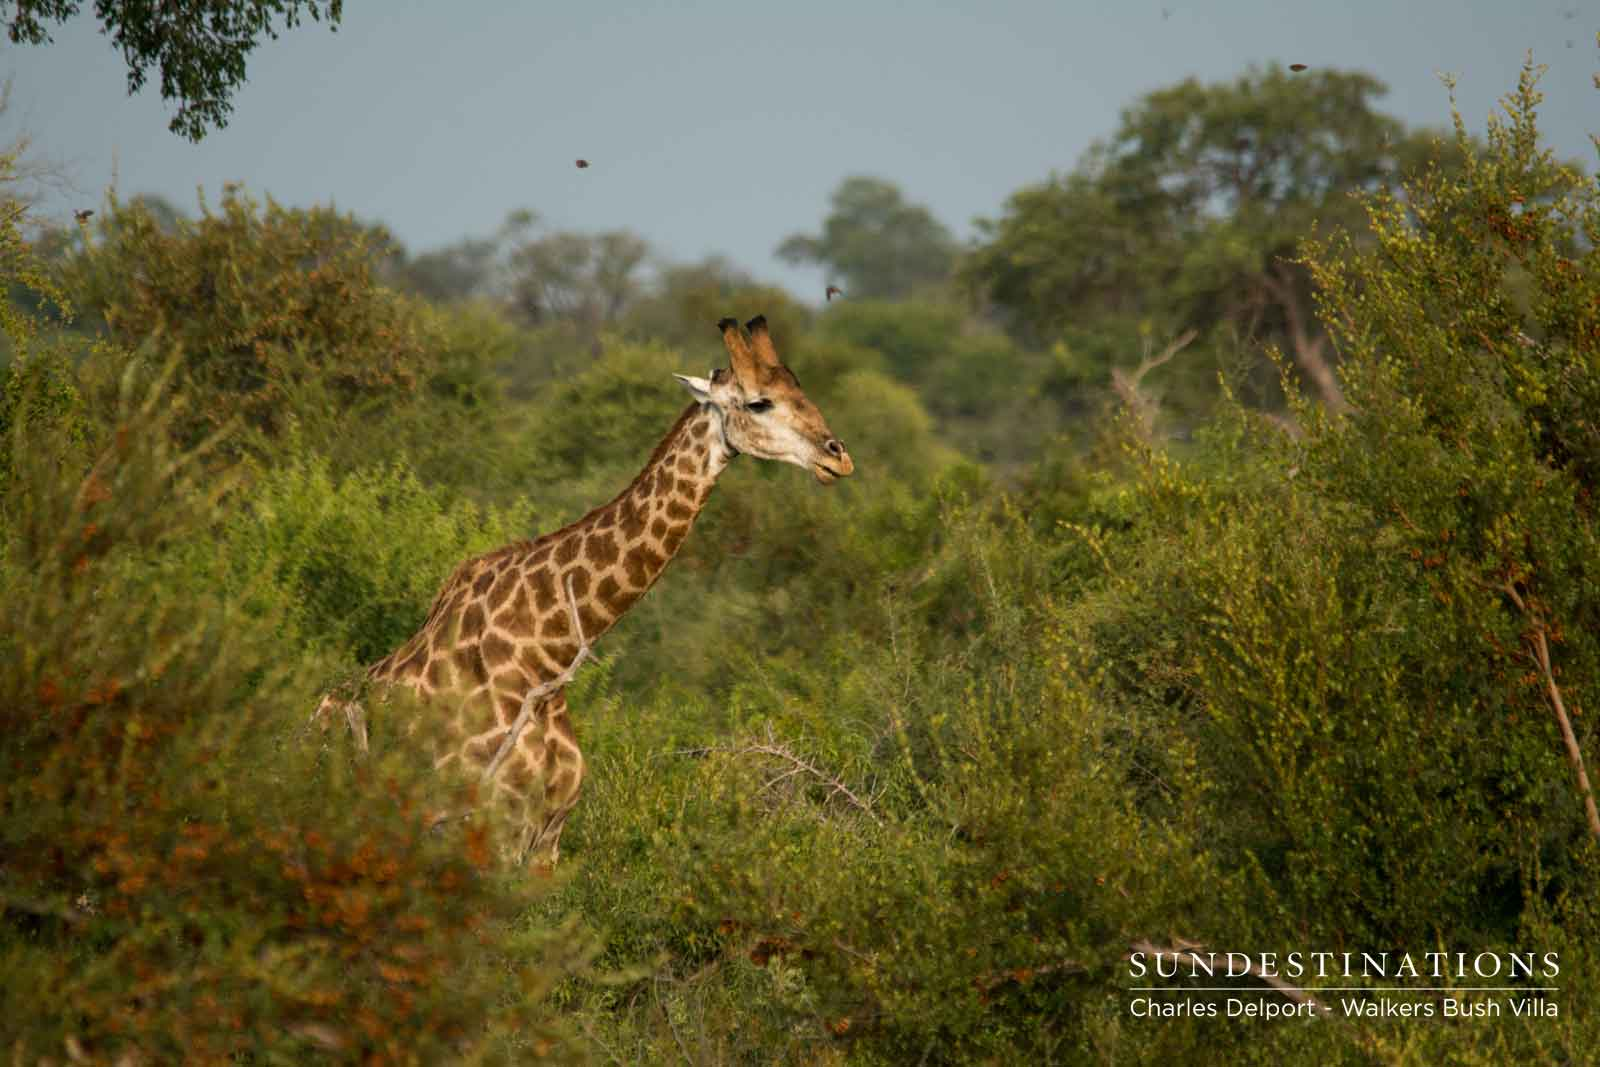 Giraffe at Walkers Bush Villa